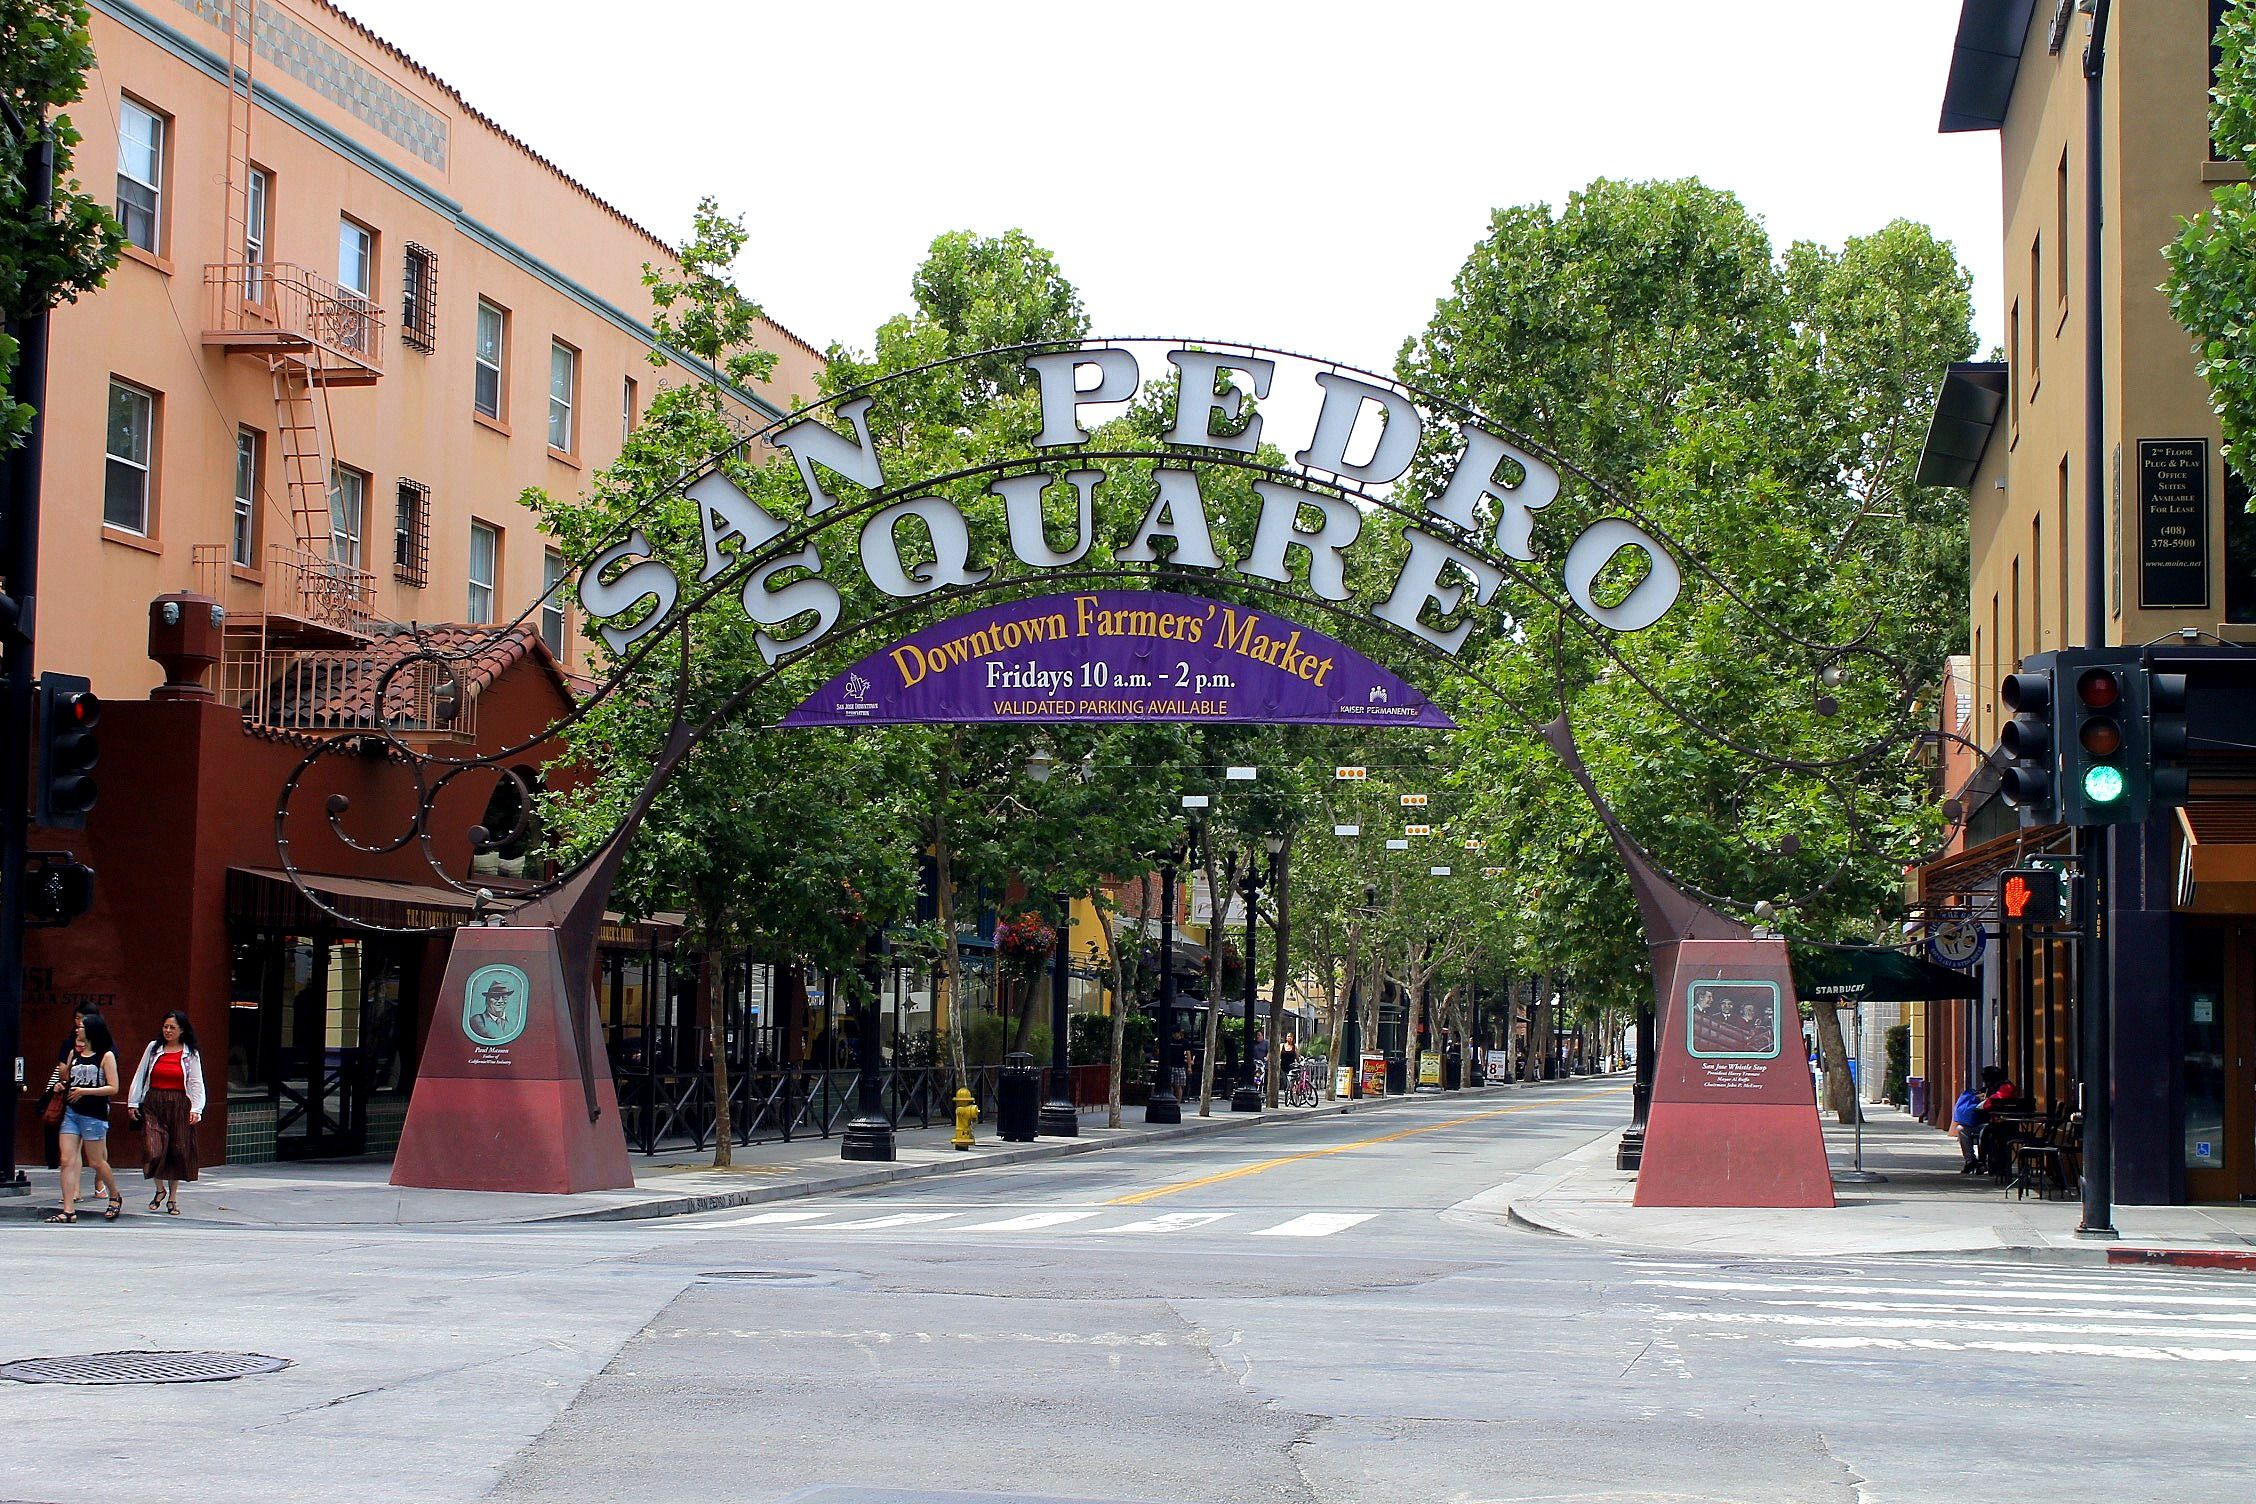 6 Things to do in San Jose, California in a Day (With images) | San jose california, Jose, San pedro